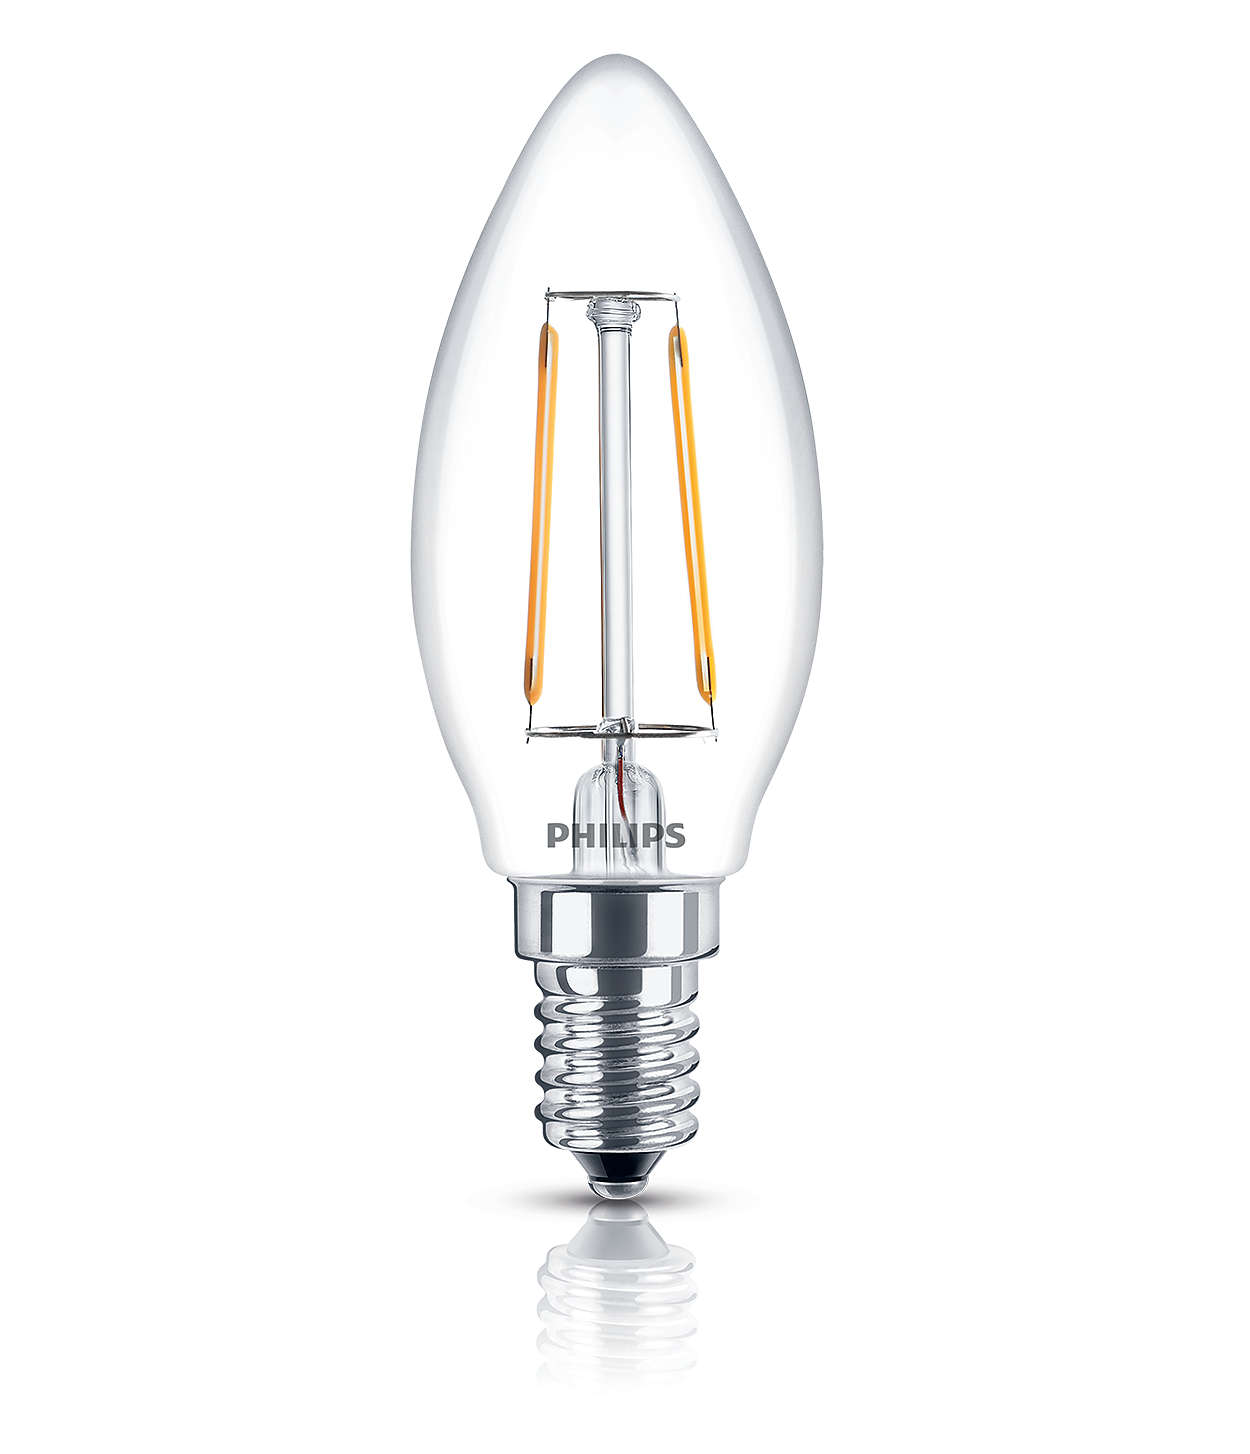 Decoratieve LED-lampen